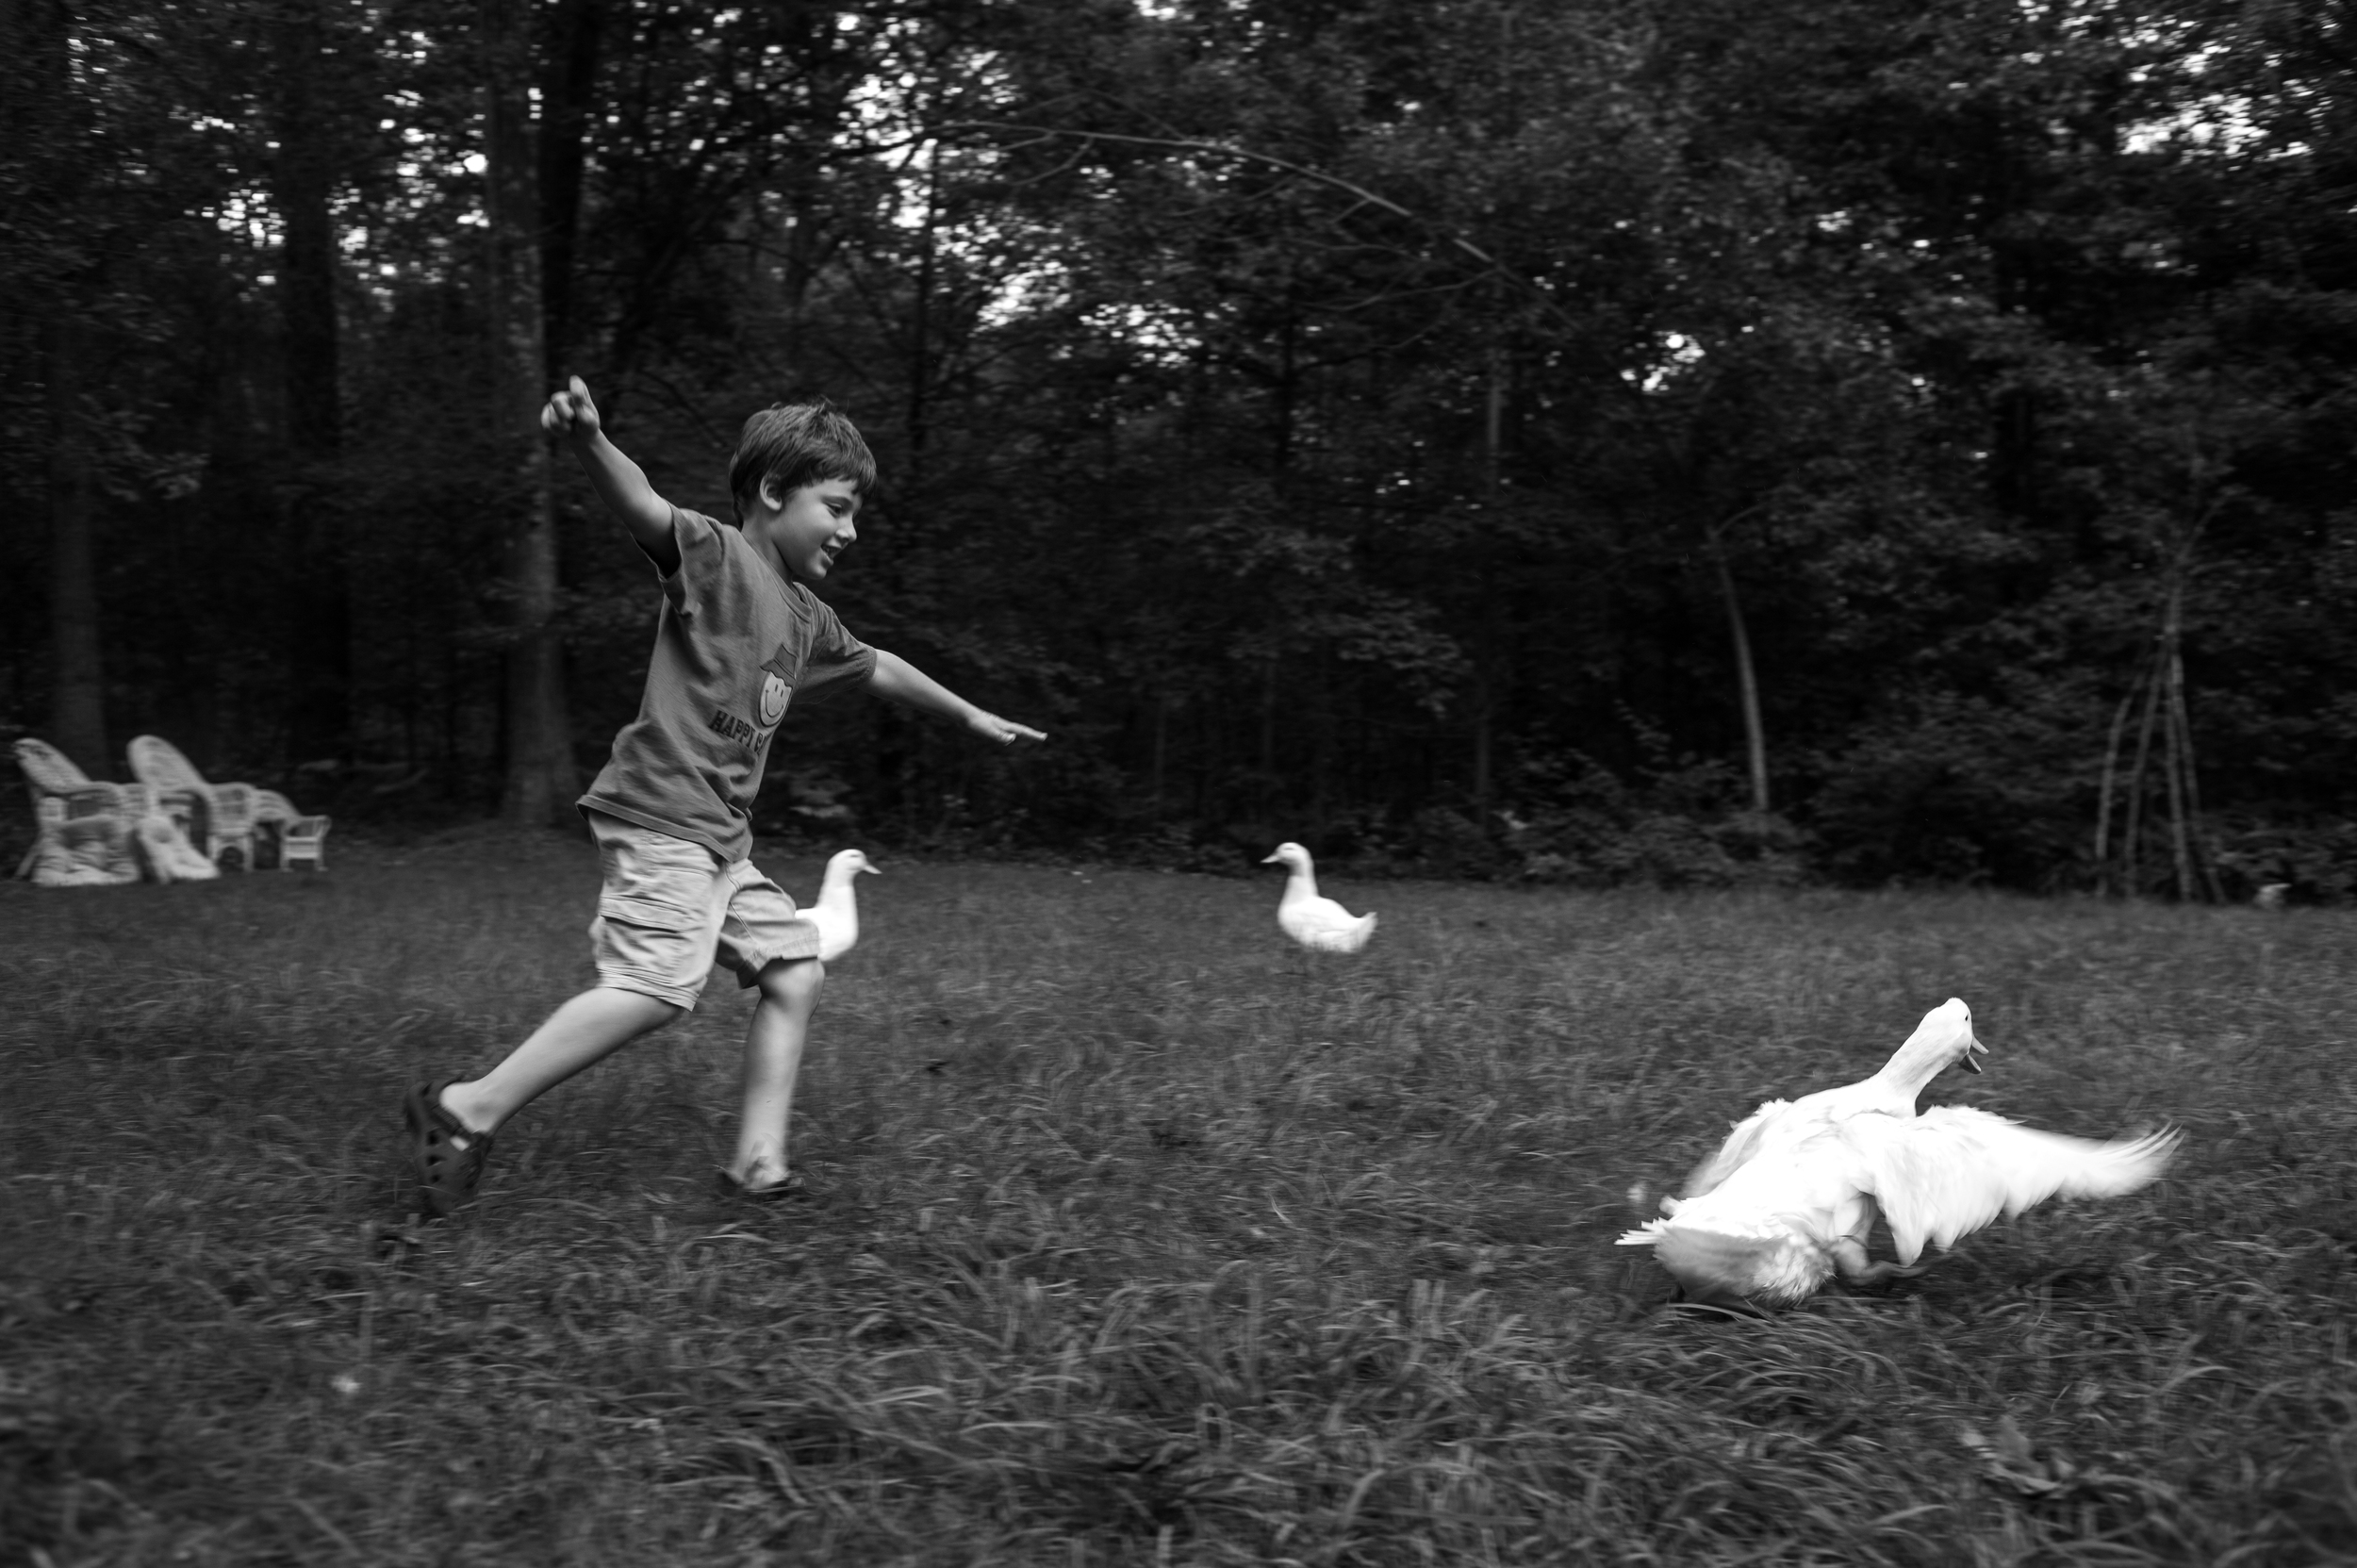 The initial plan to sneak up on a group of ducks splashing around in a plastic pool led to a chase that had the ducks fleeting the back yard as Elijah follows close behind.